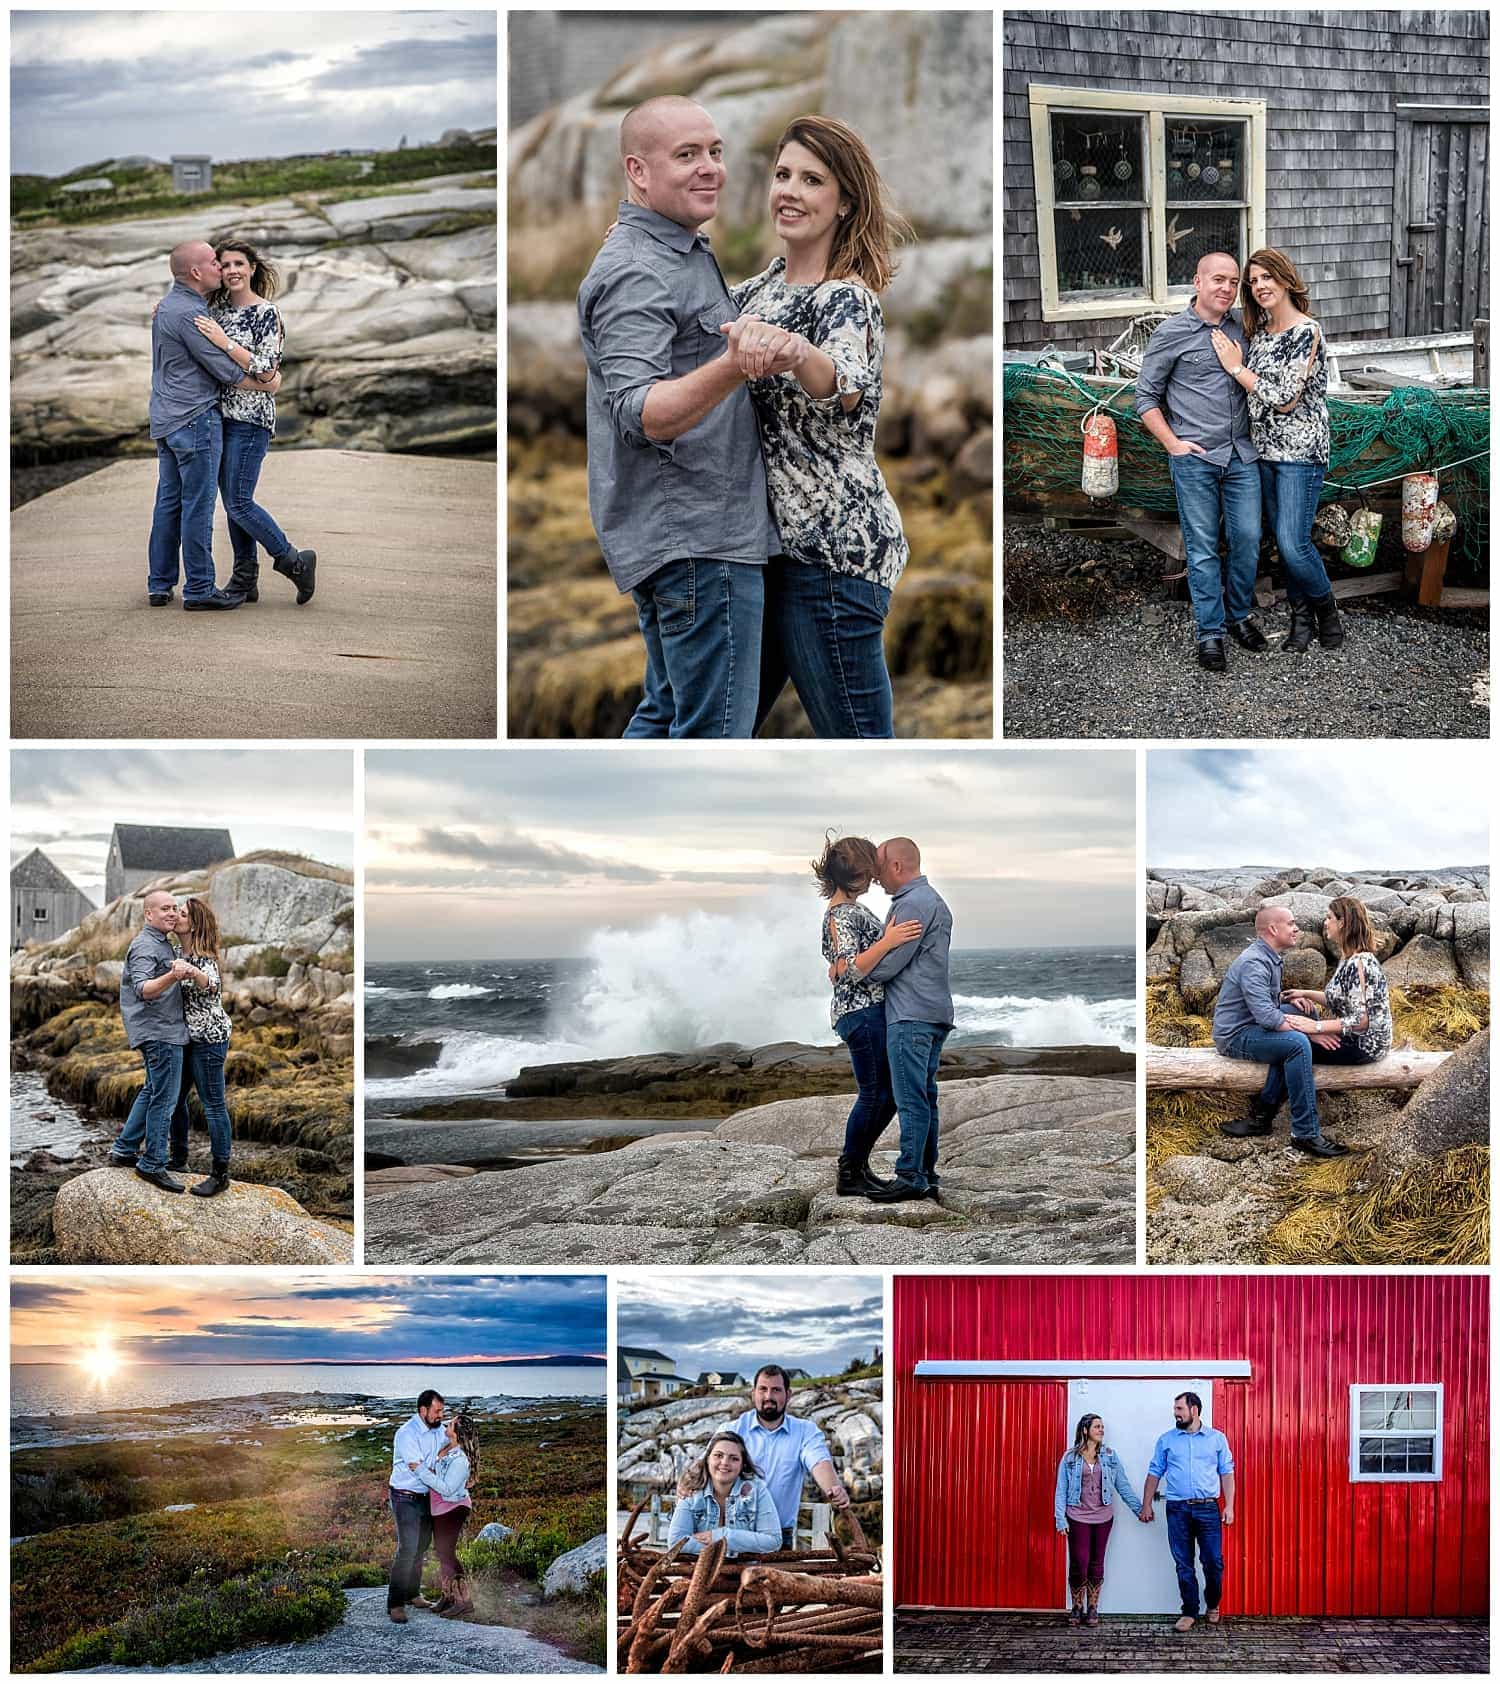 Engagement photos of very cute couples at Peggys Cove in Nova Scotia by a Halifax wedding photographer.